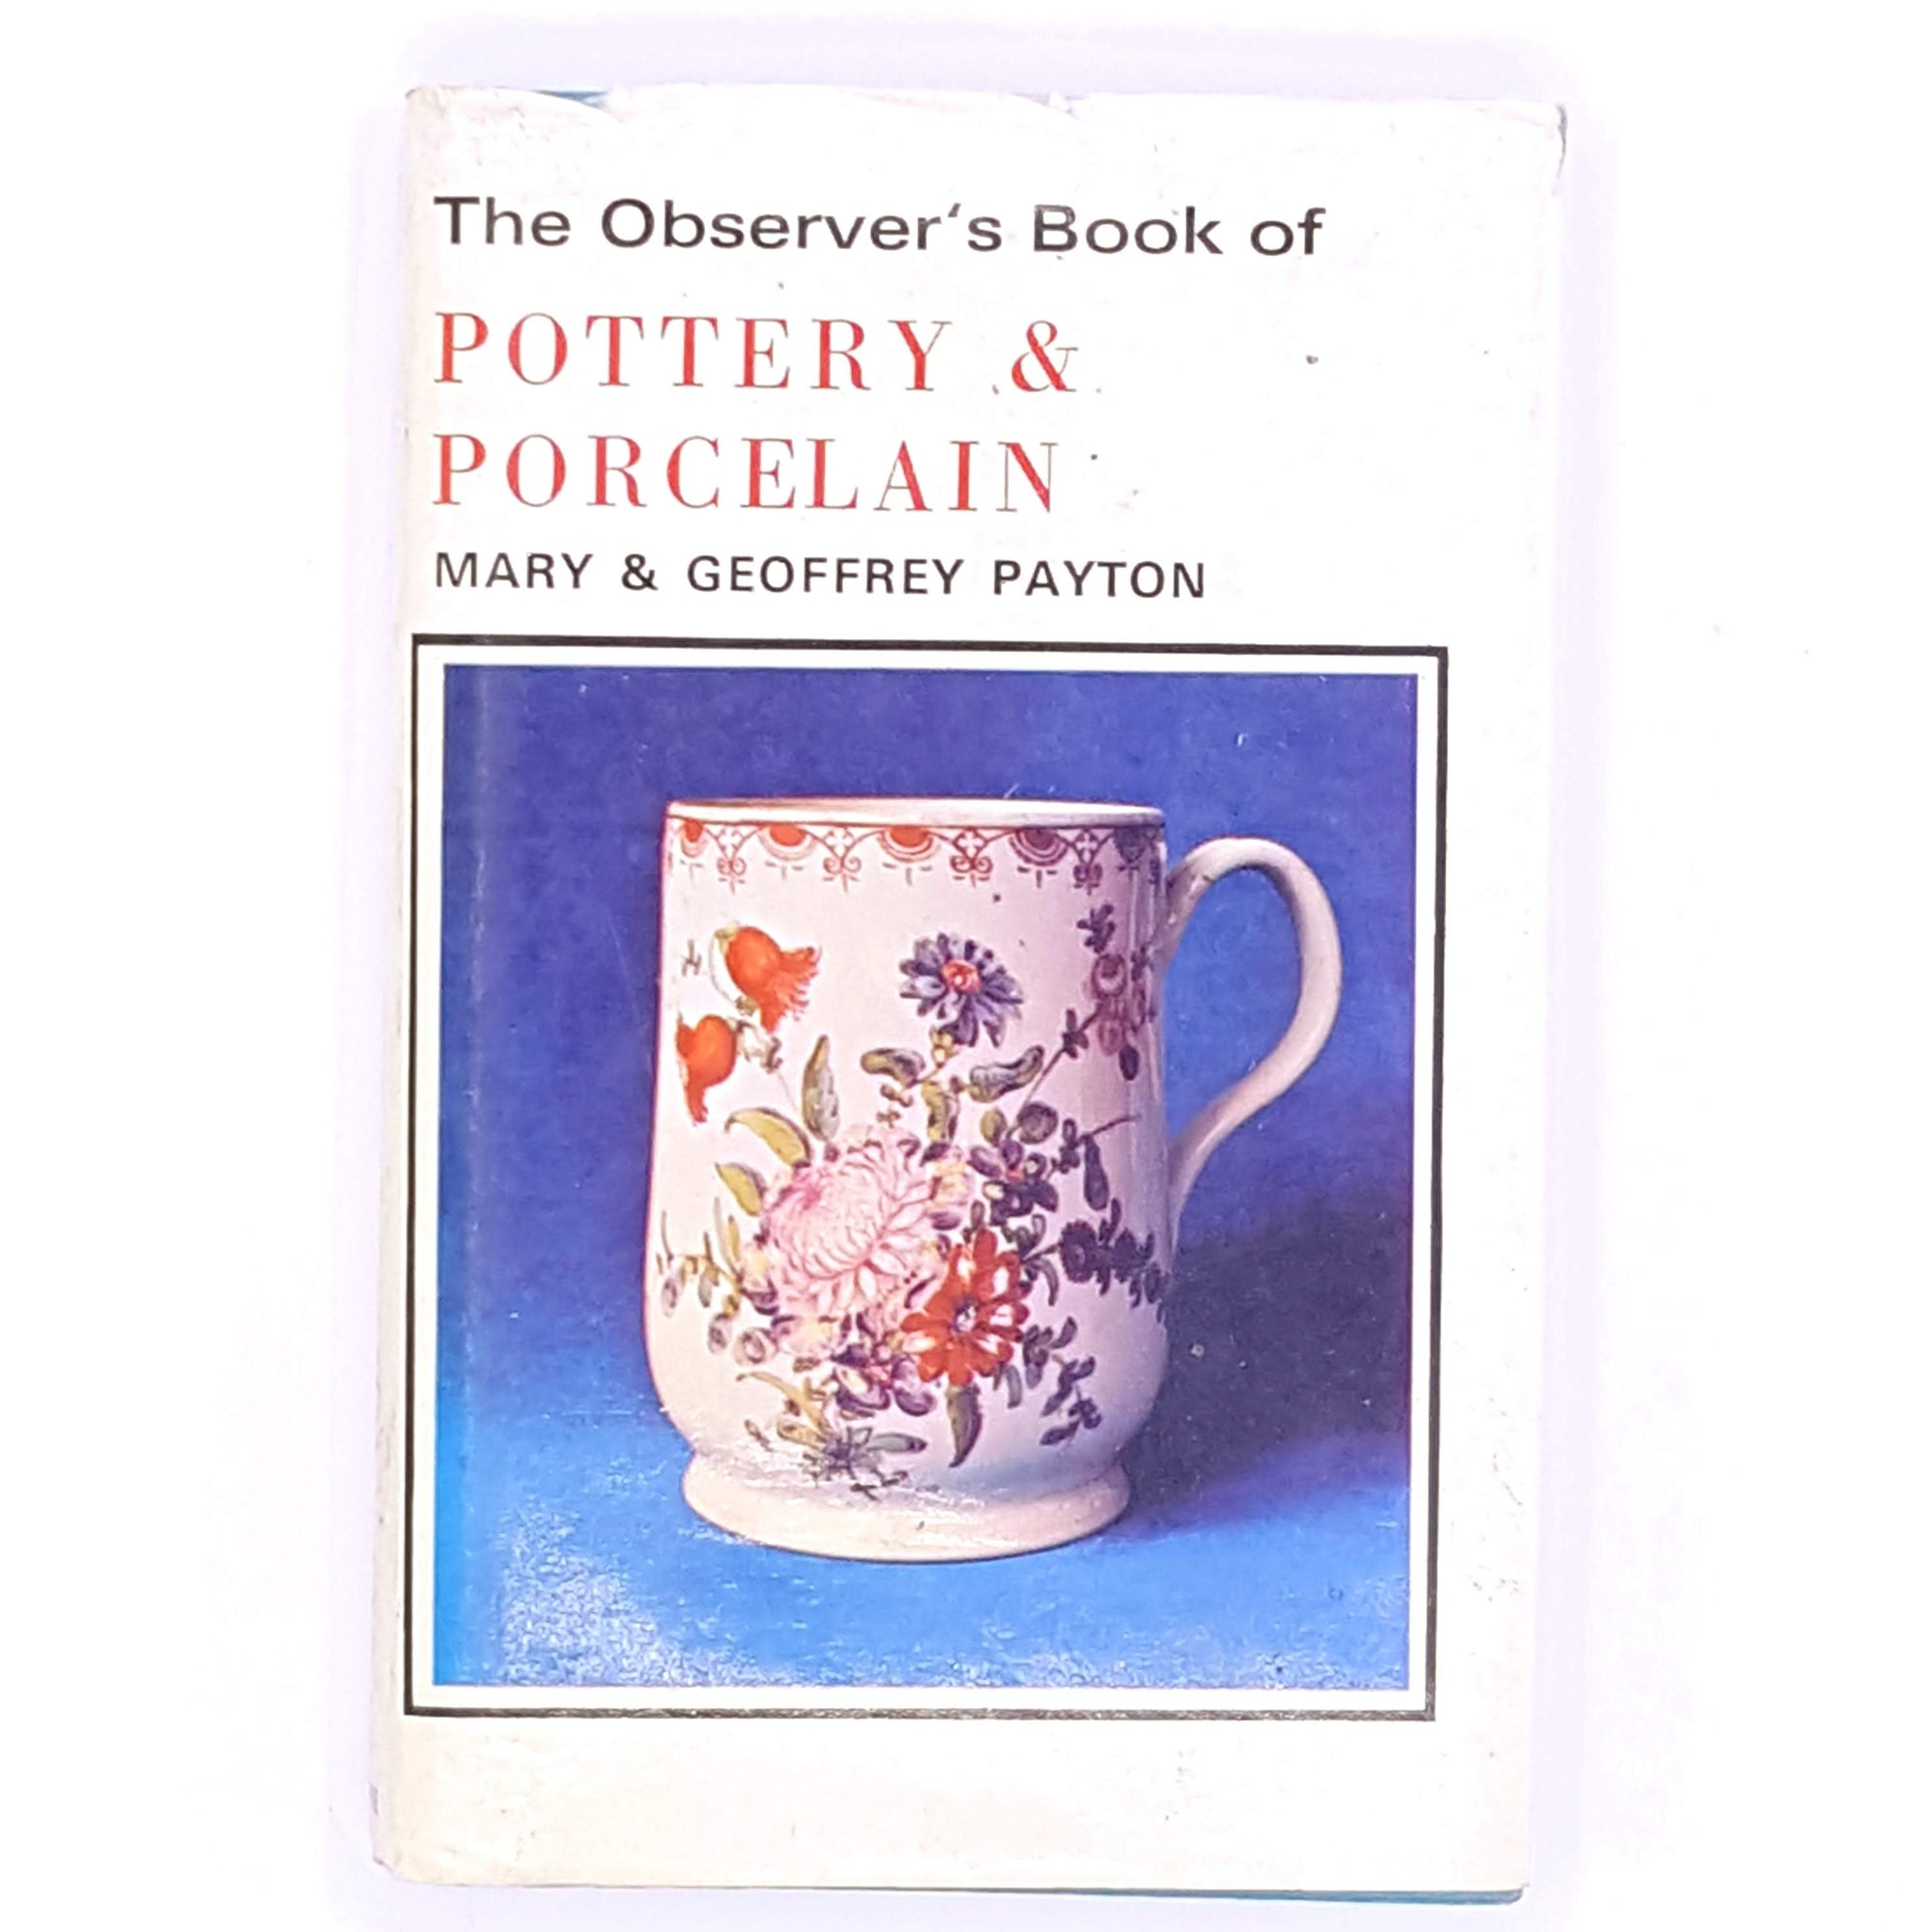 Pocket-Frederick-Warne-country-house-library-porcelain-Observer-Guide-Illustrated-Mary-payton-pottery-vintage-1973-decorative-Geoffrey-antique-old-Series-books-patterned-classic-thrift-